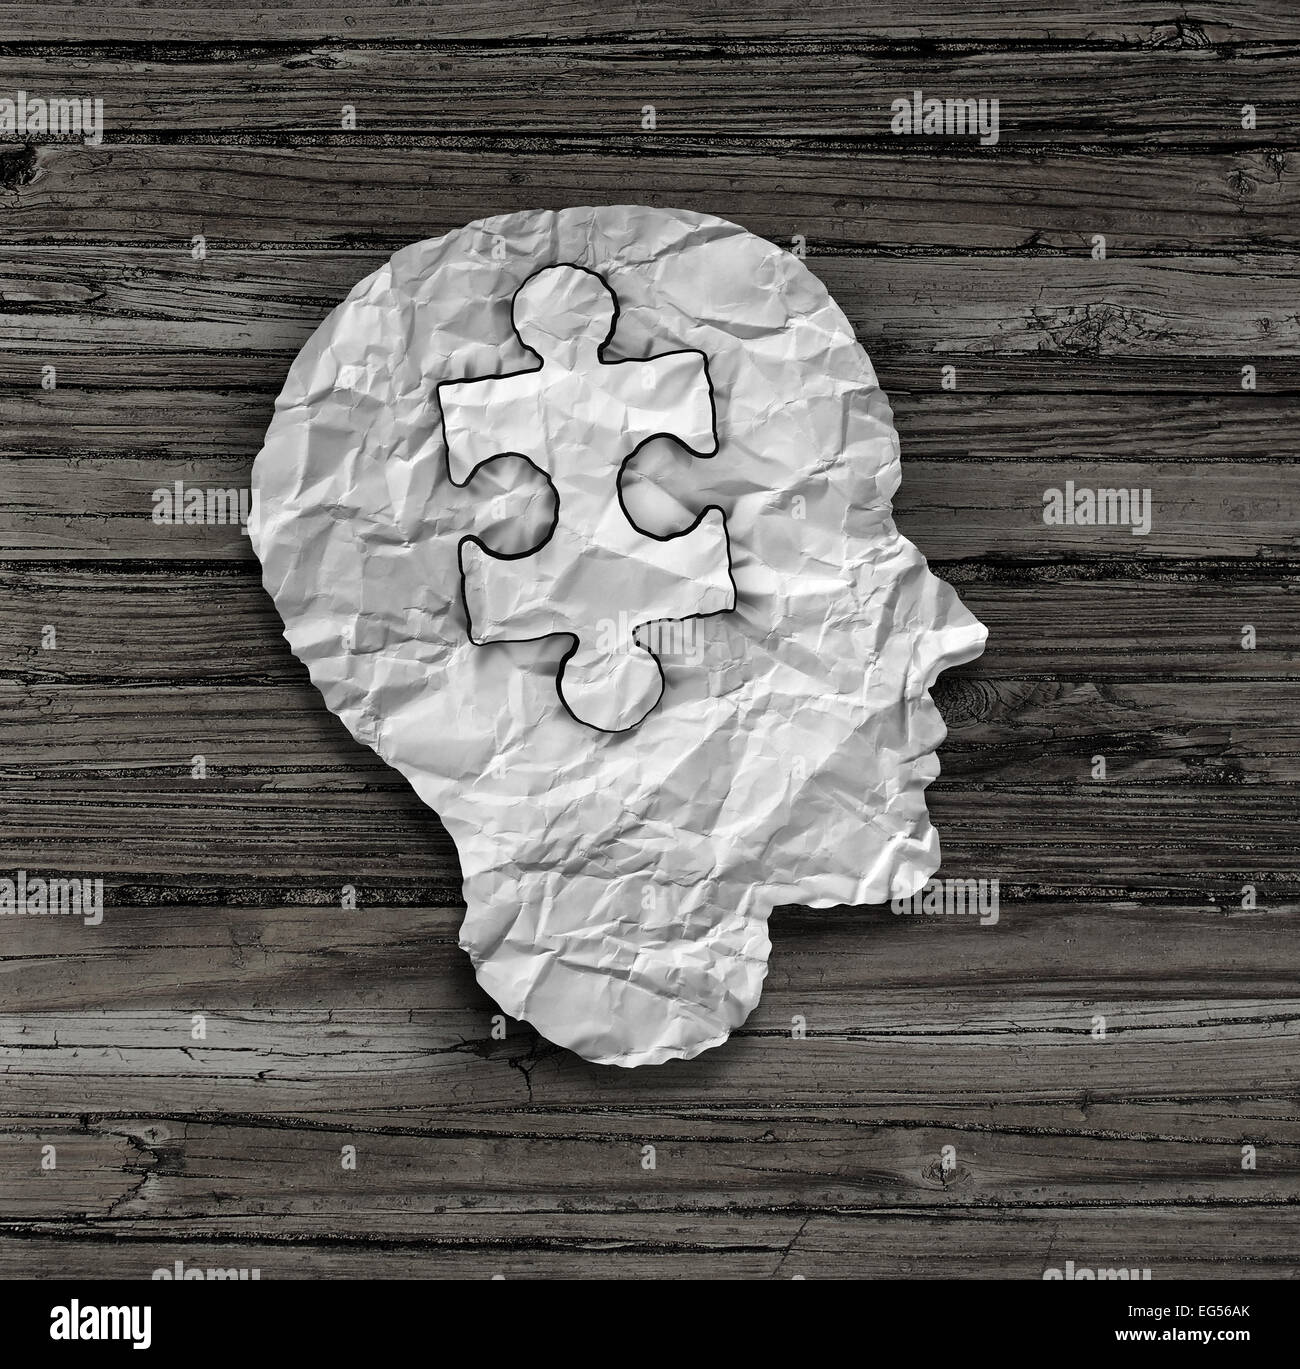 Puzzle head solution concept as a human face profile made from crumpled white paper with a jigsaw piece cut out - Stock Image